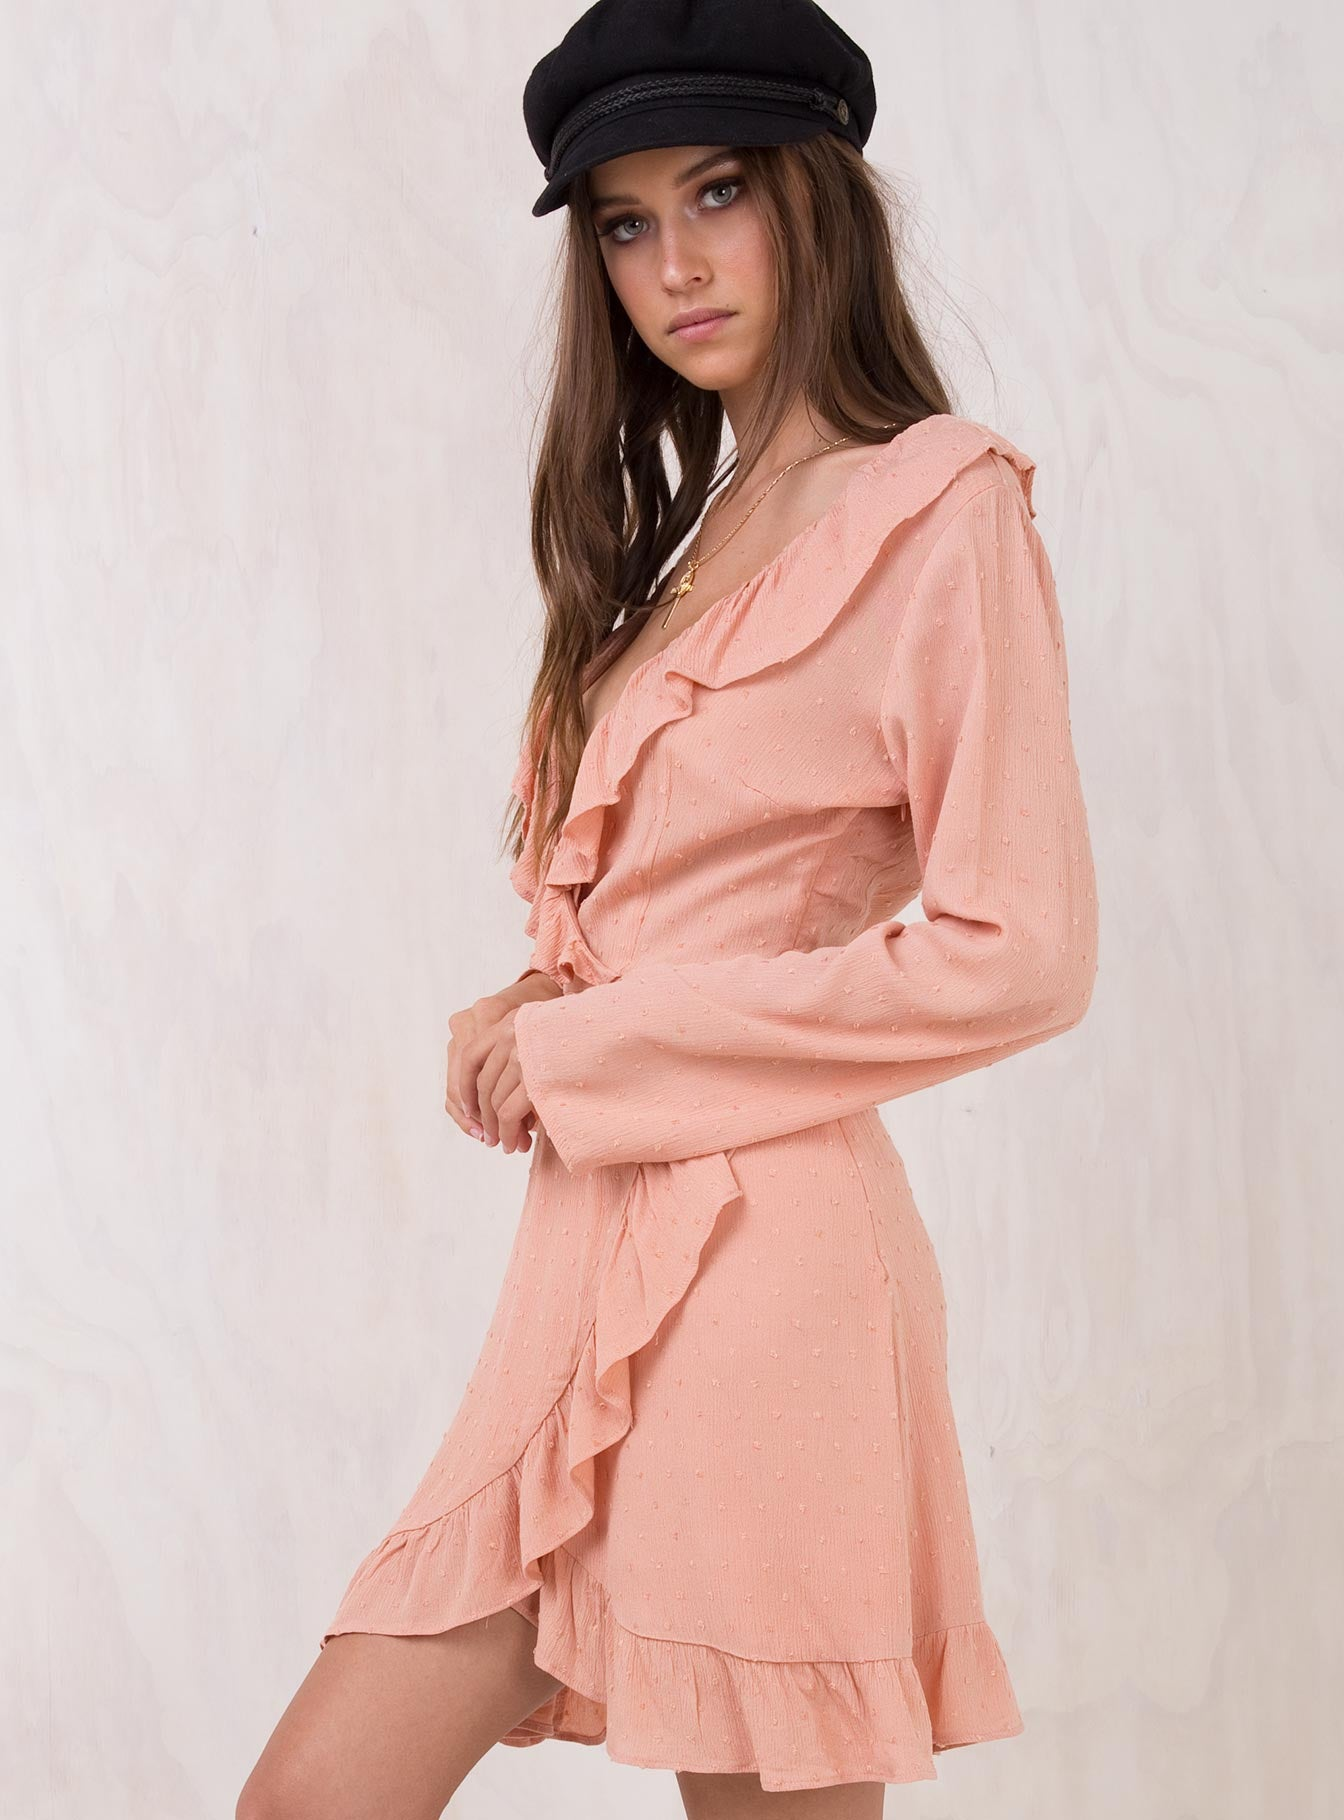 Baby Doll Ruffle Wrap Dress